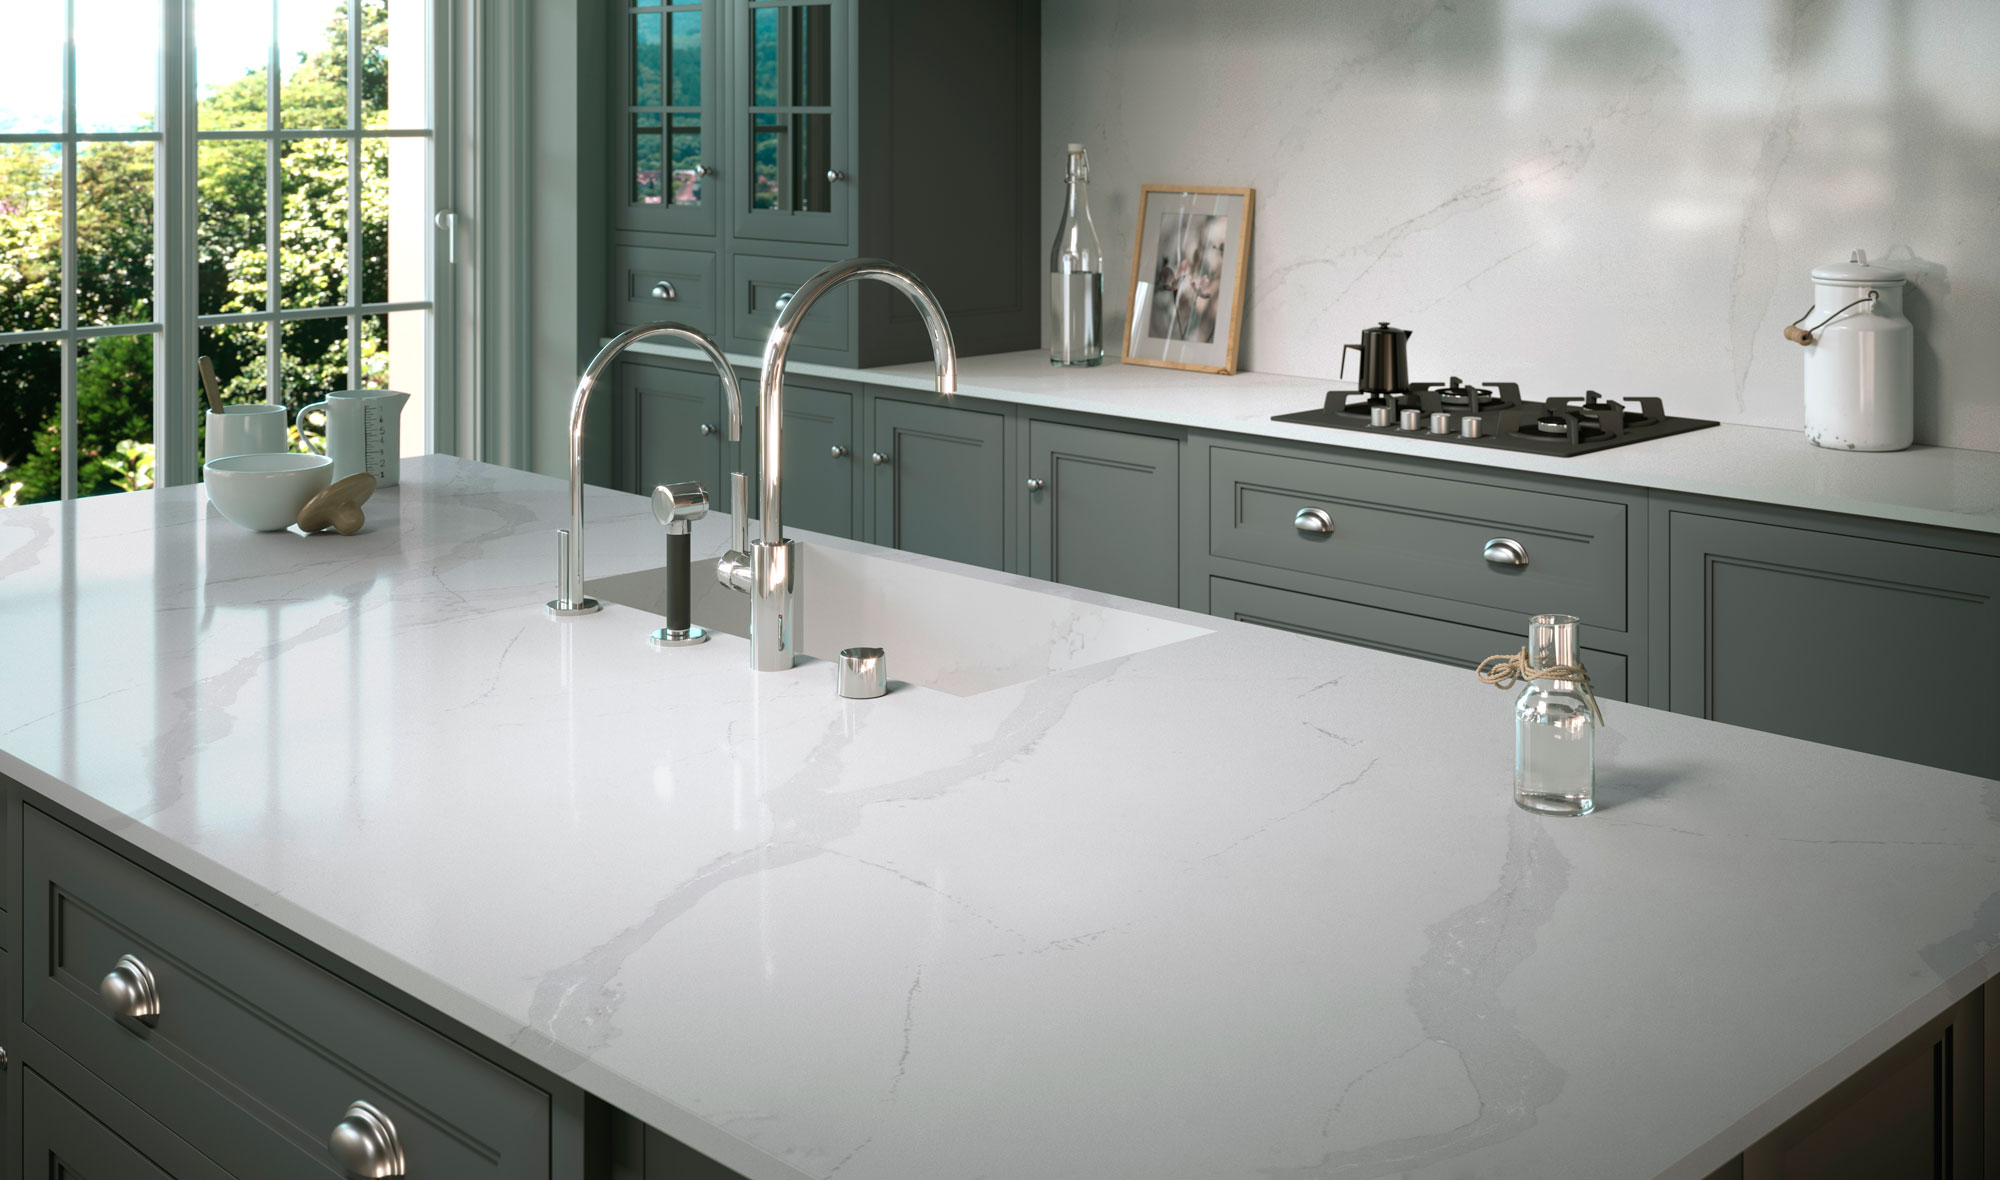 5 Veined Quartz Countertops That Mimic The Look Of Natural Stone